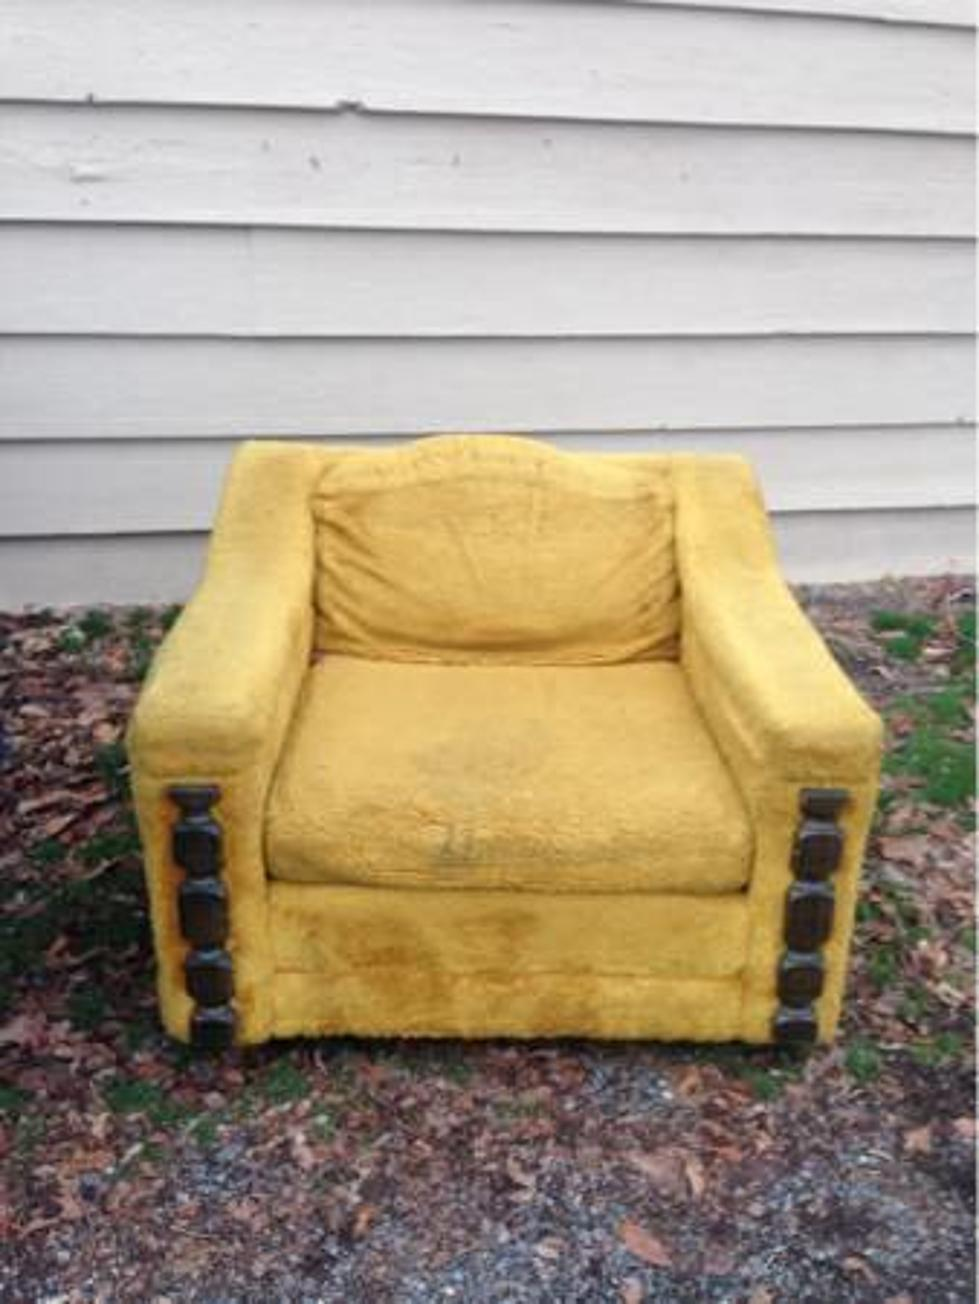 5 Free Items Found on Missoula Craigslist You Would Actually Use